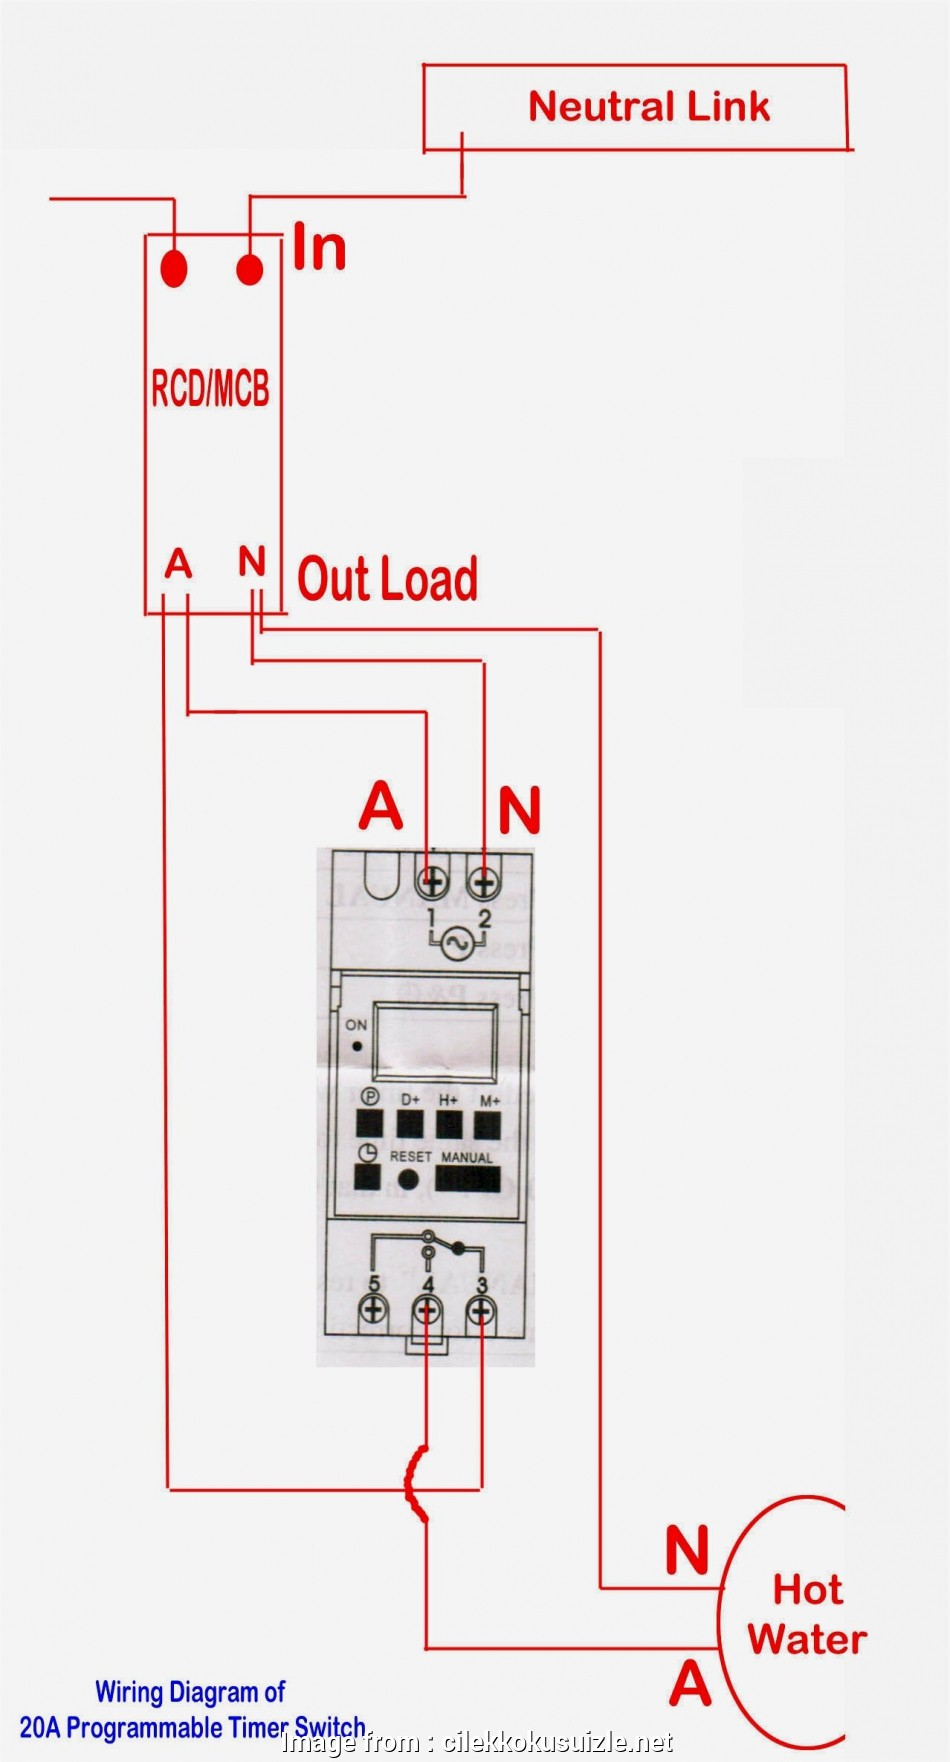 how to wire a 240 volt light switch in australia wiring diagram, pdl light  switch